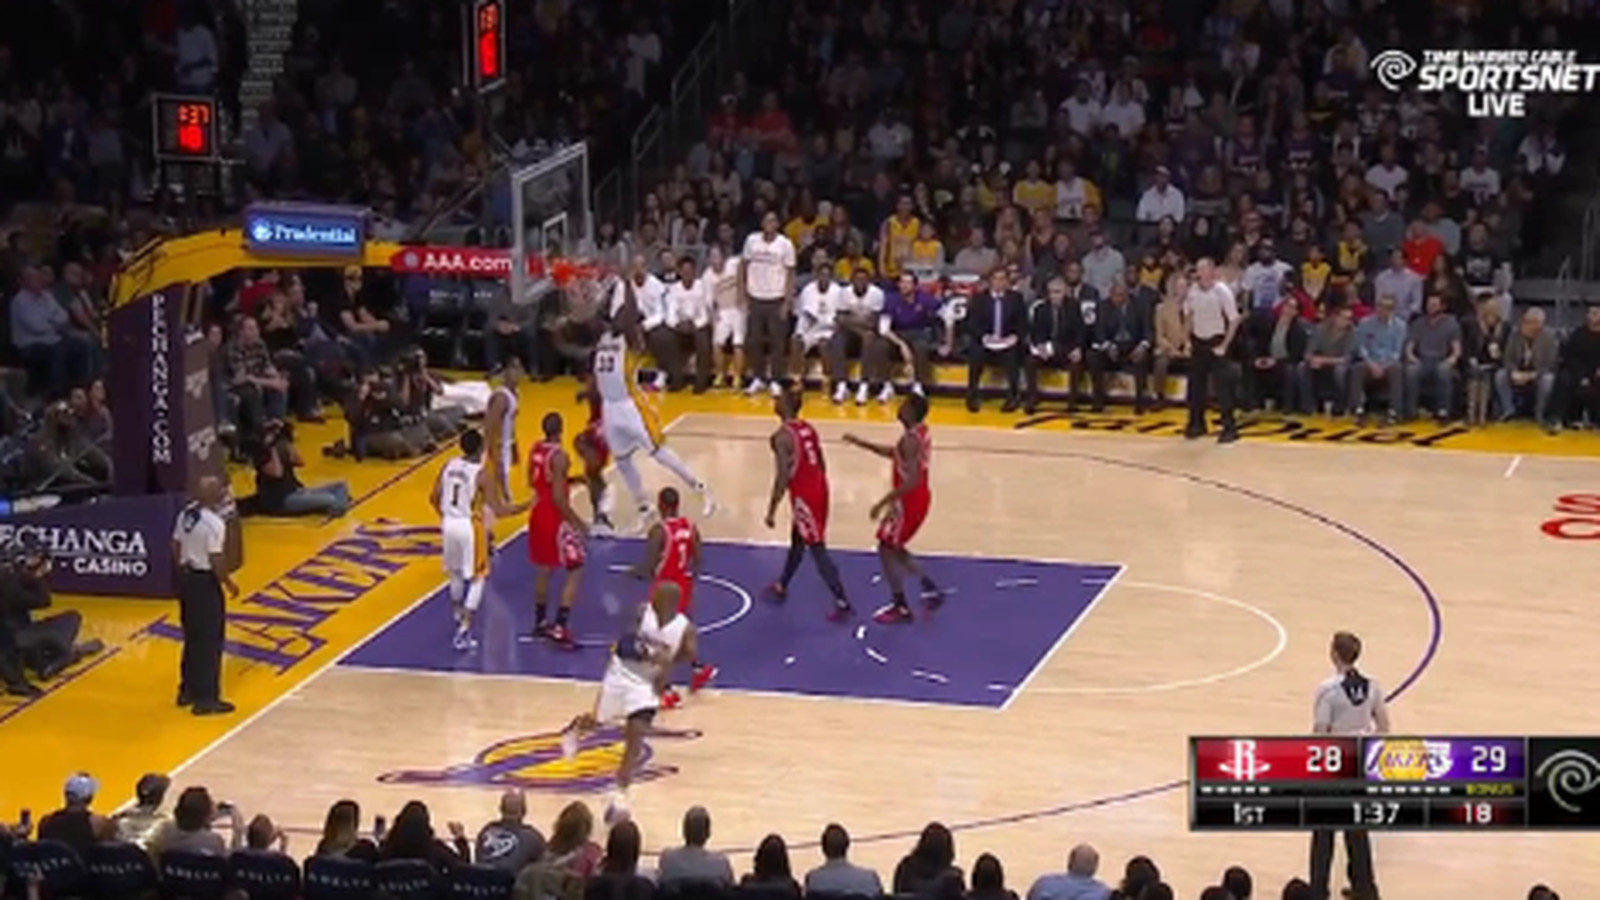 Kobe can't stop dishing no-look passes